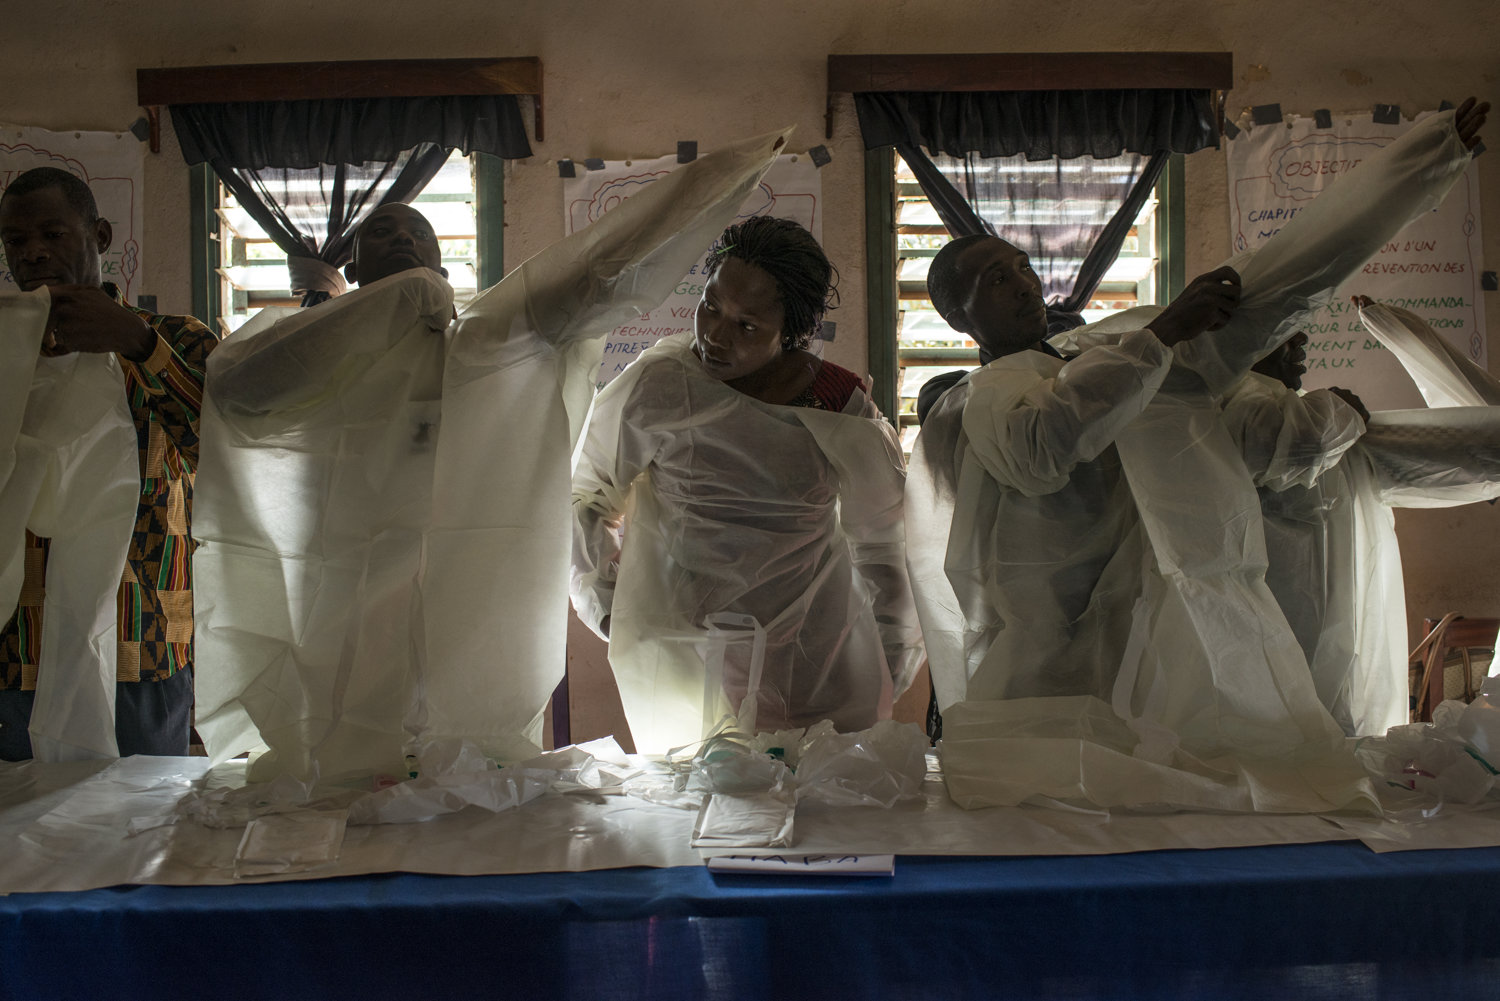 Elisa, center, practices putting on protective gear with her fellow students. Students are handed out protective gear to practice with on Day 2 of the JHIPAGO training. This session is led by Mrs Saran Kaba-in Faranah, Guinea on November 17th, 2015.